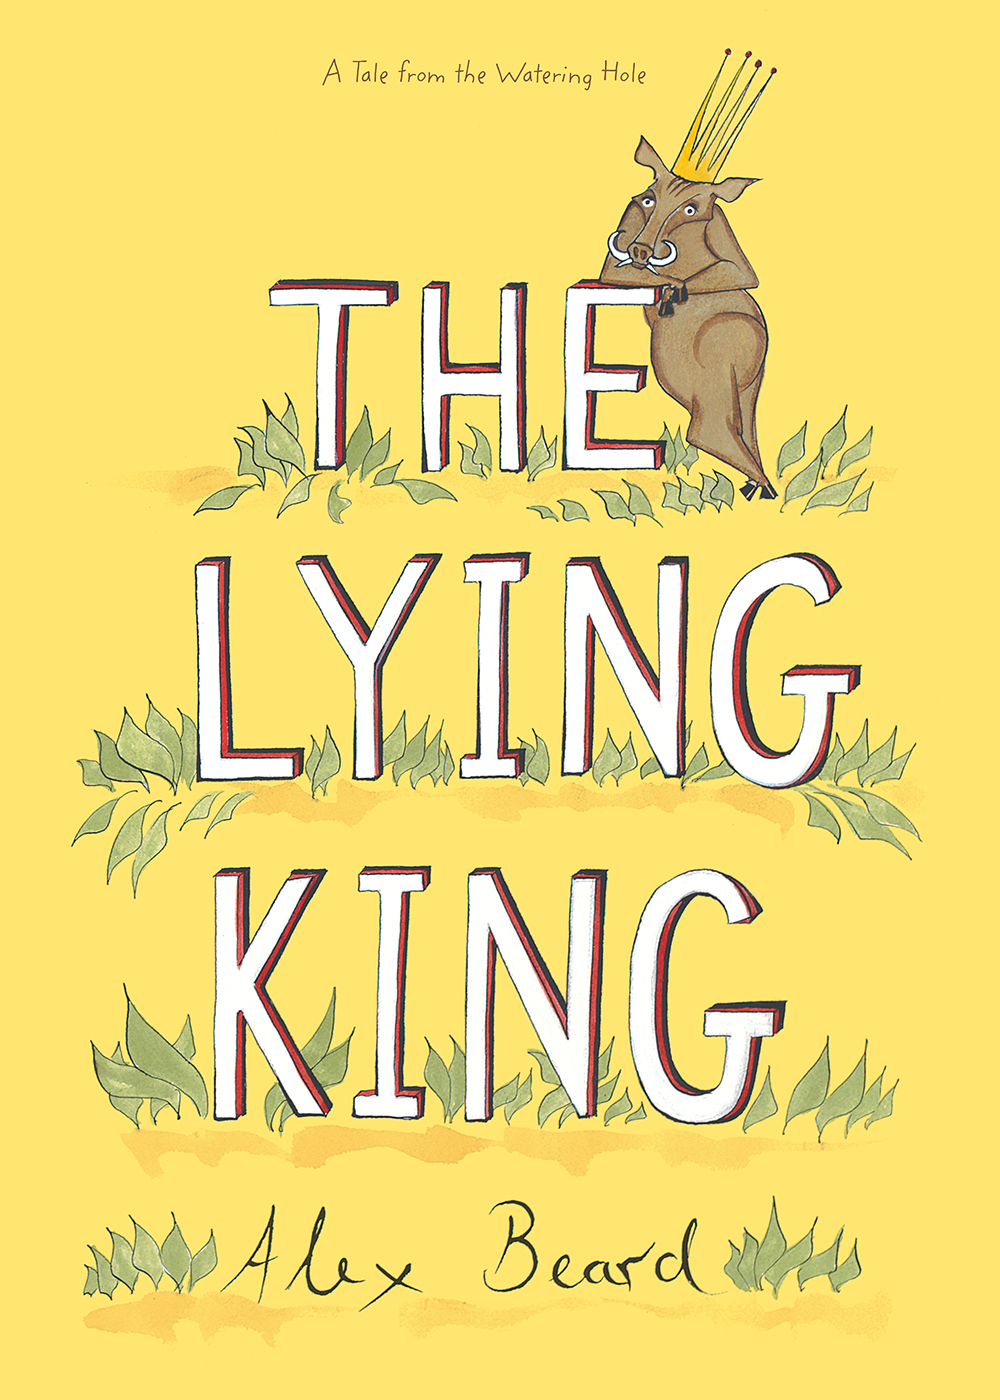 Book cover for Alex Beard's The LYING King, featuring a swaggering warthog with a crown on his fat head.